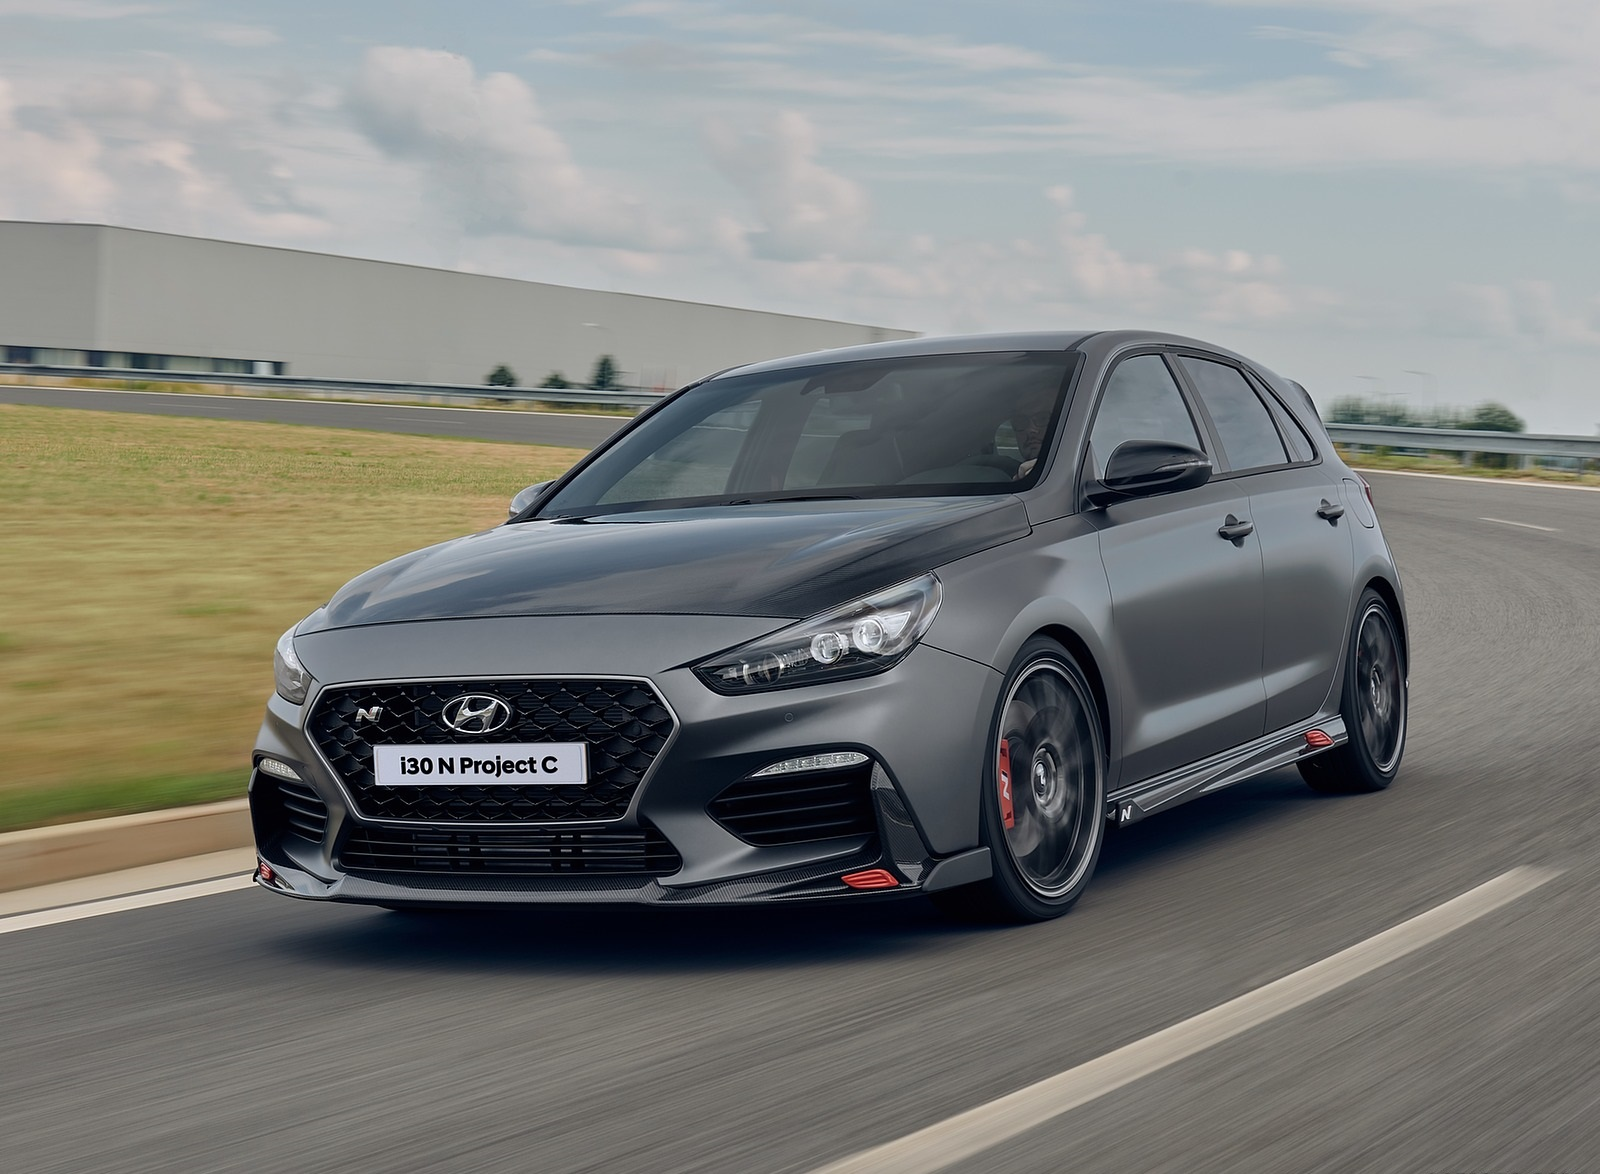 2020 Hyundai i30 N Project C Front Three-Quarter Wallpapers (3)